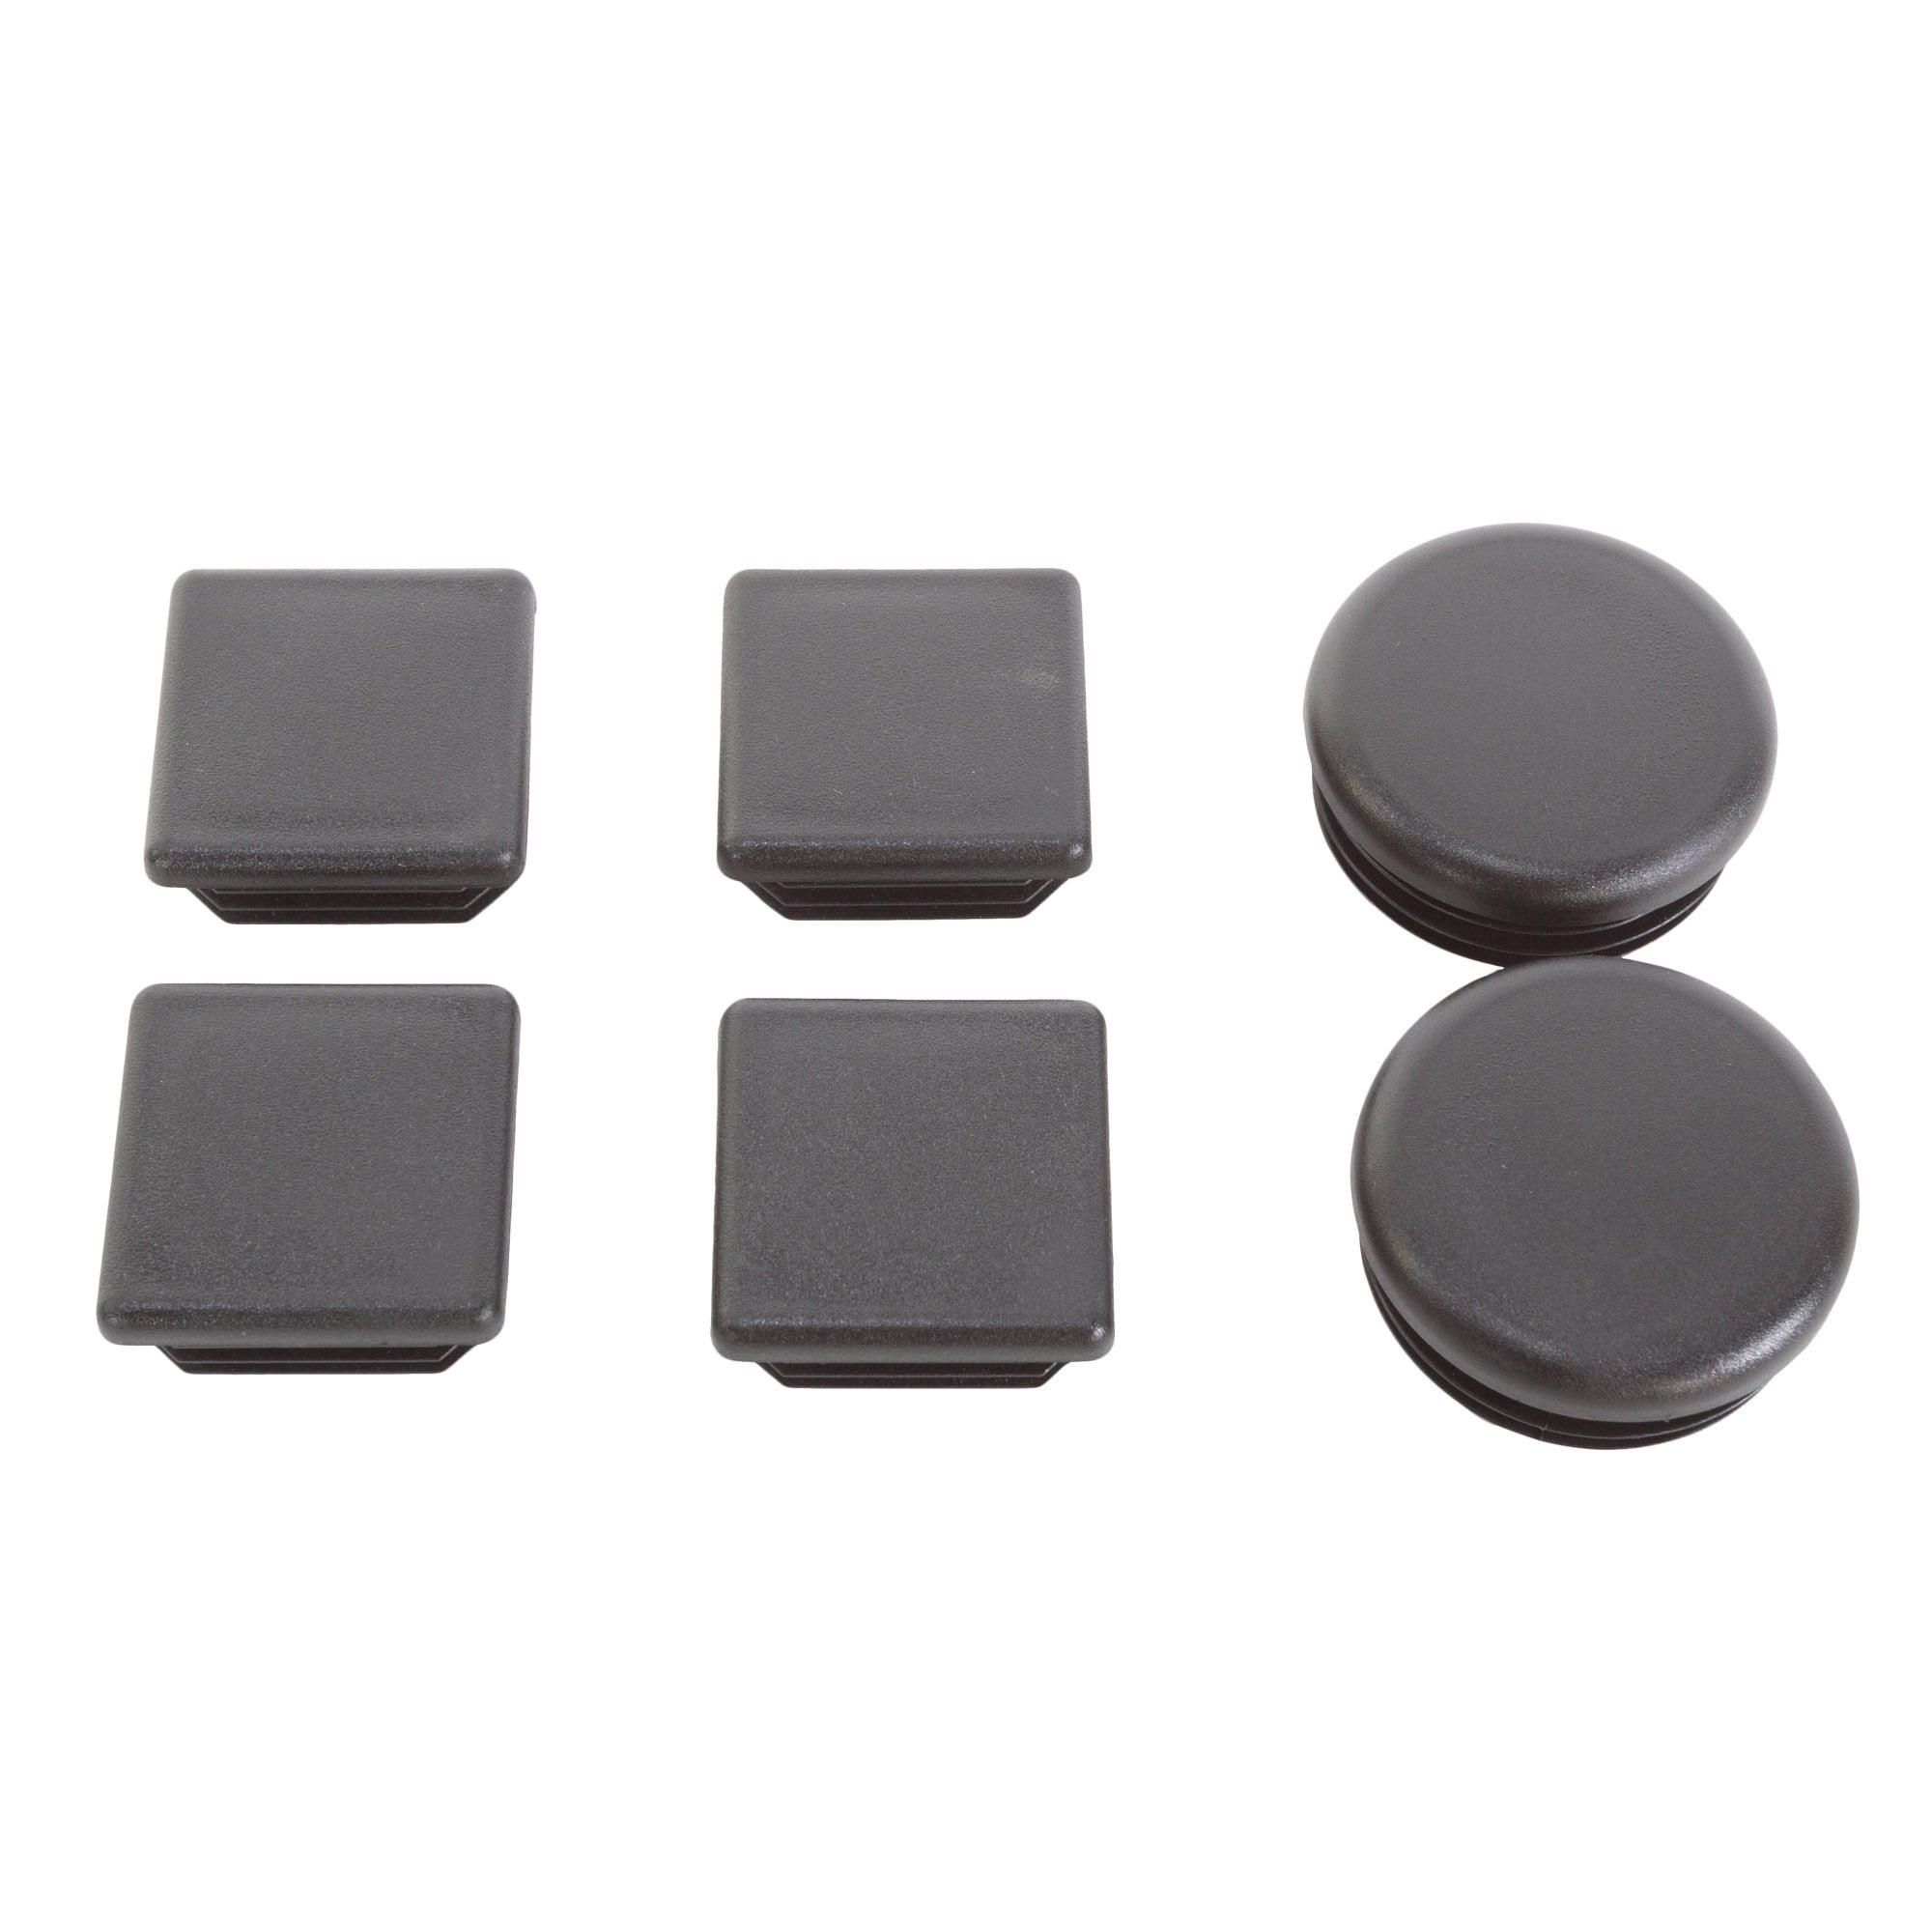 Metal Hammock Stand End Caps On Sale 4 Square And 2 Round